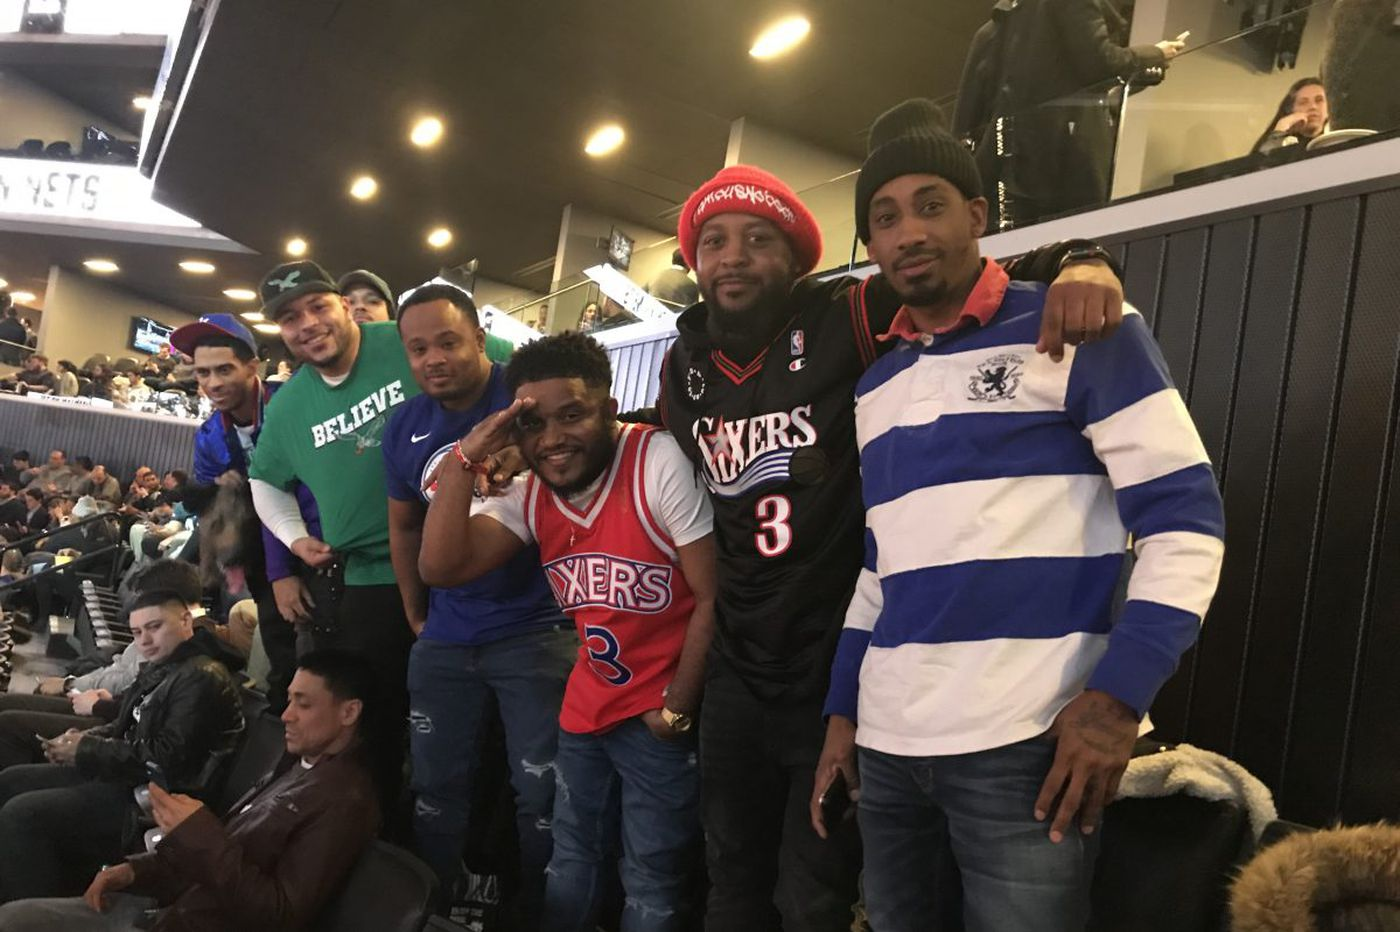 Sixers fans infiltrate Nets game and start Eagles chants